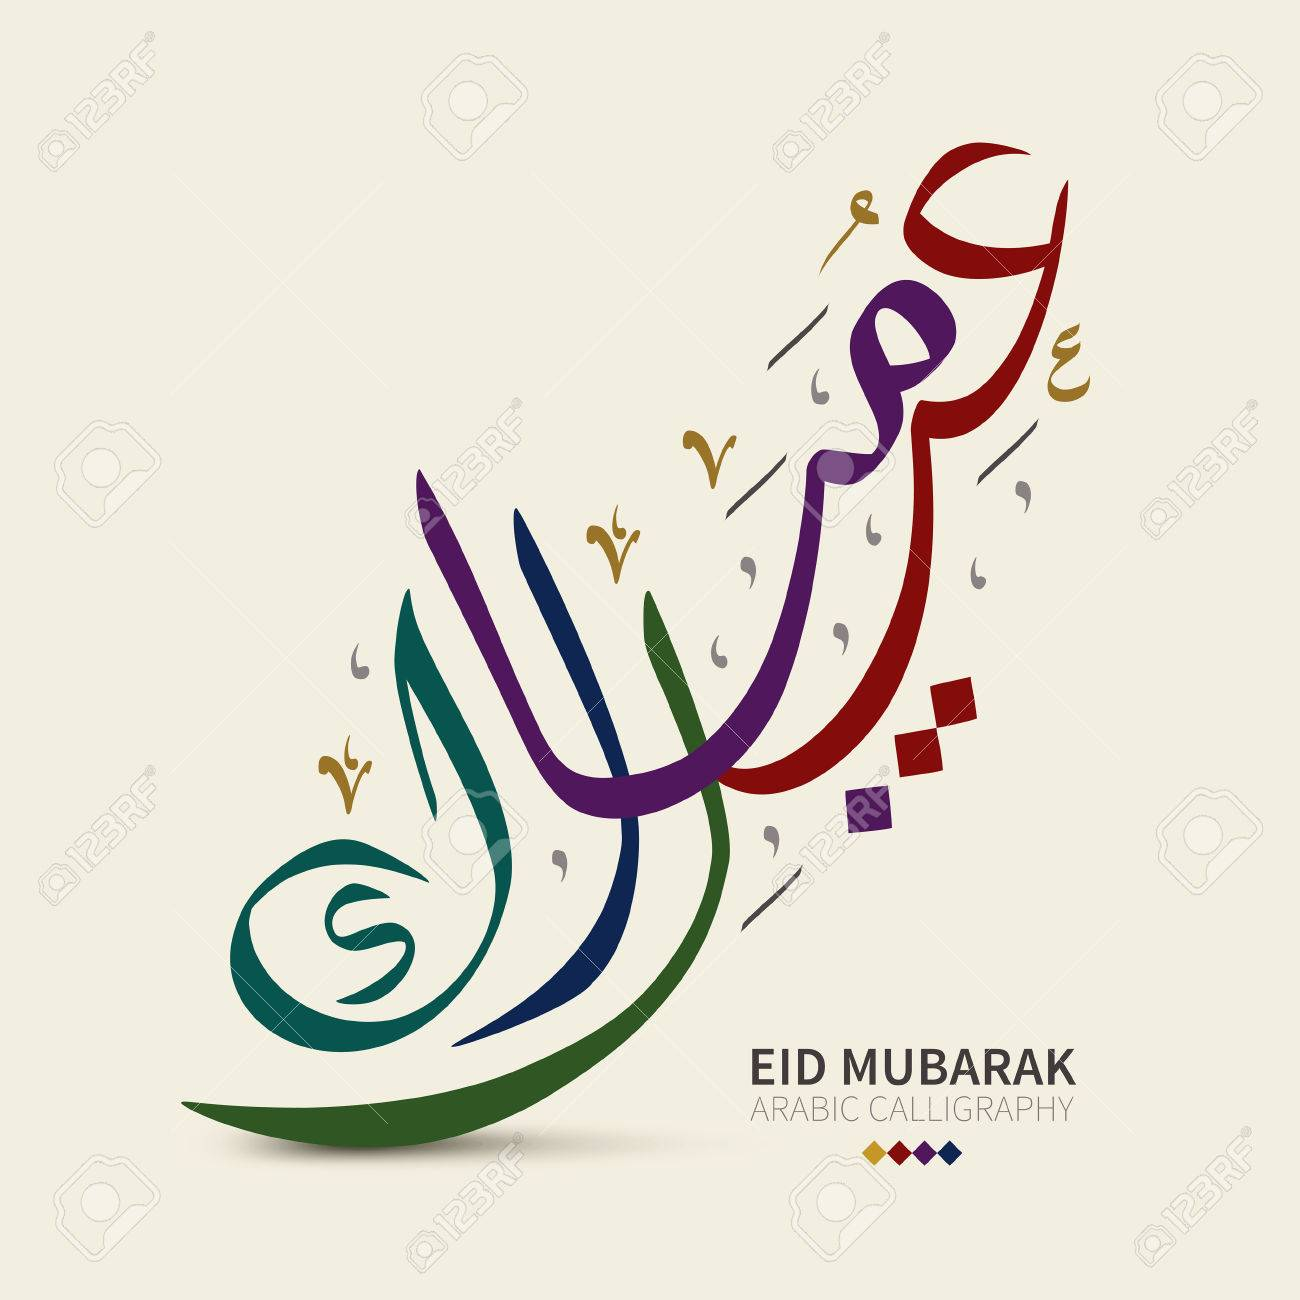 Arabic Calligraphy Design Of Text Eid Mubarak For Muslim Festival Stock Vector